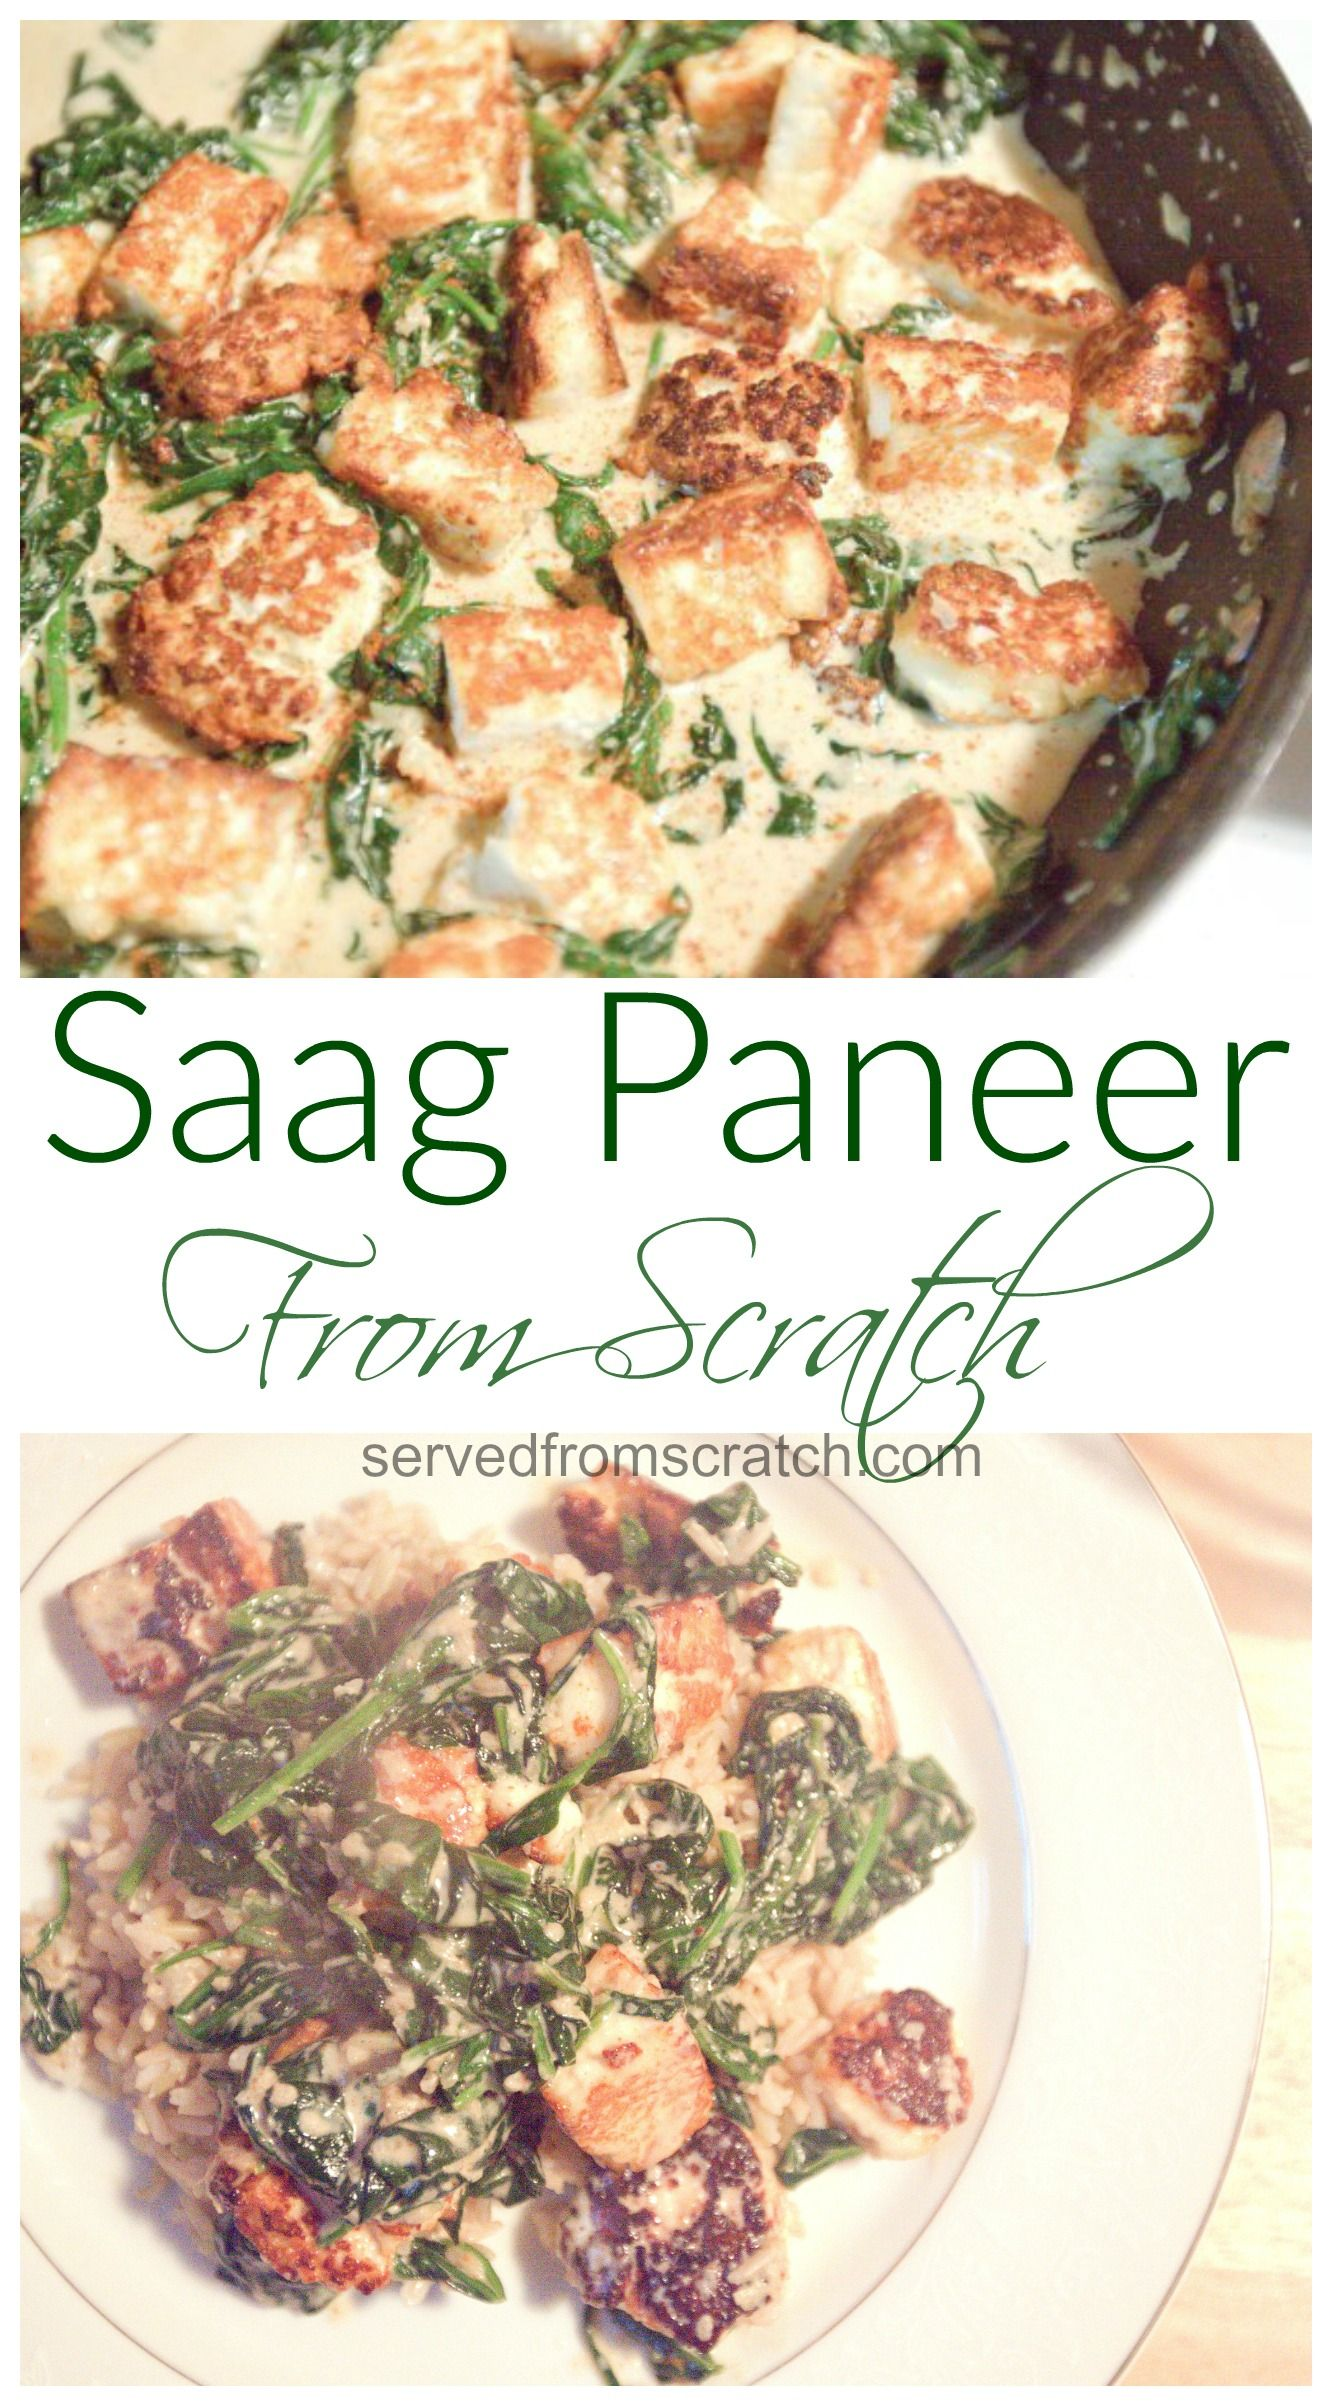 Saag paneer recipe foods blog and main dishes you know what i love most about this blog the fact that its encouraged us forumfinder Gallery